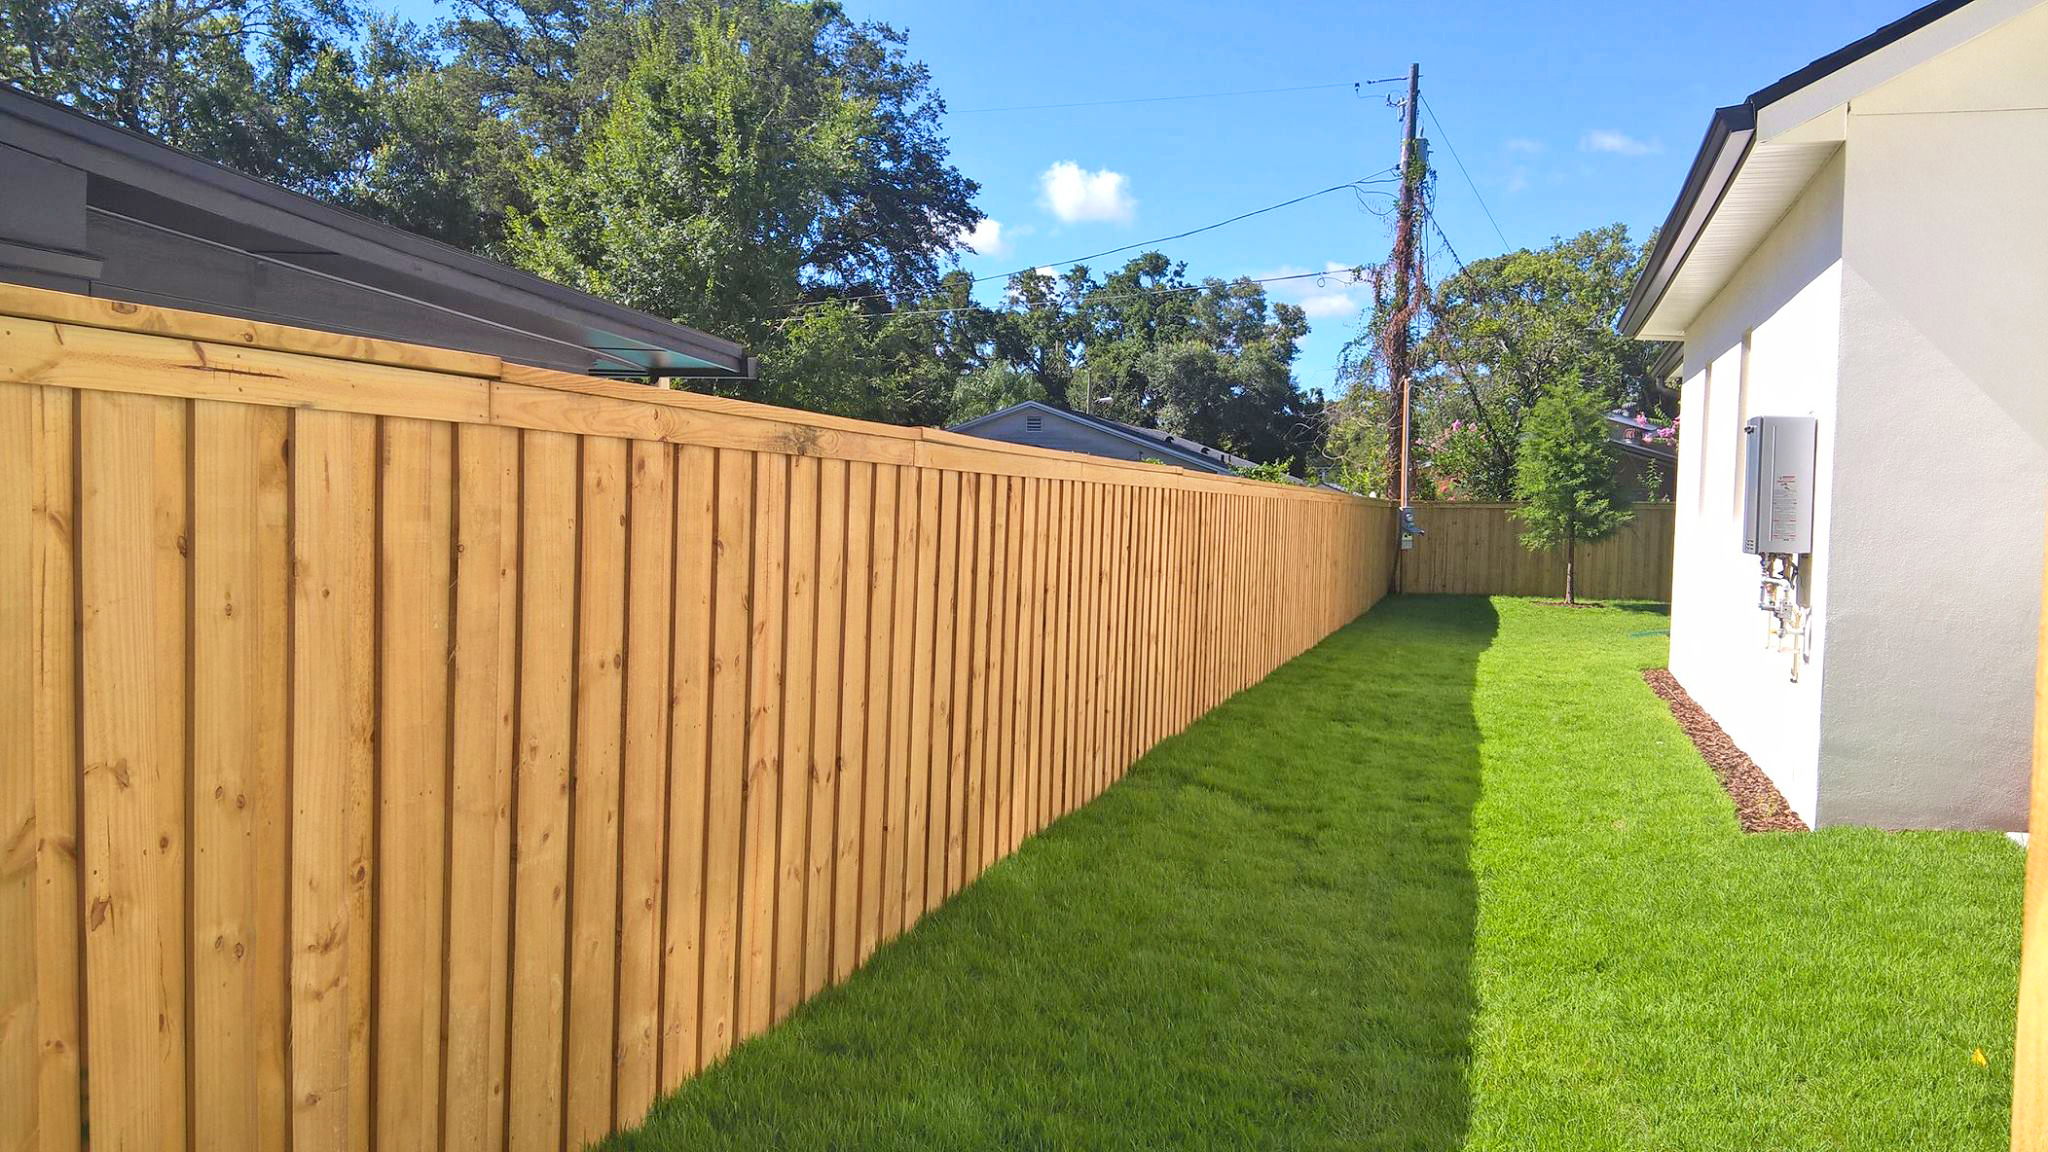 Fence Company In Orlando Fl All County Fence